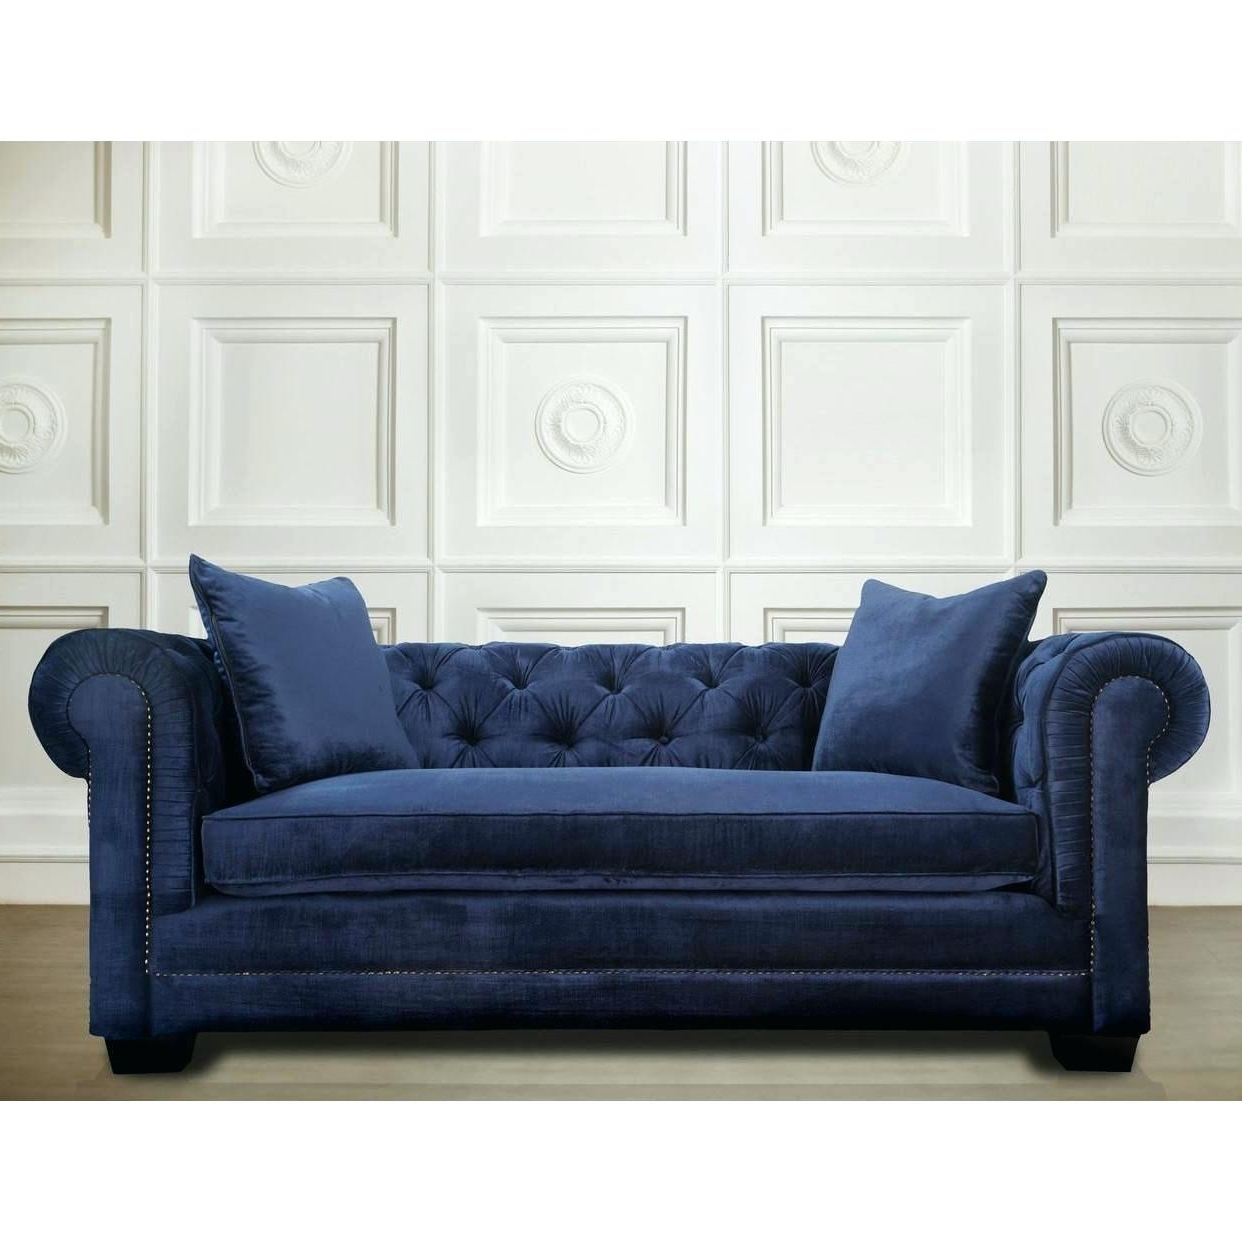 Navy Blue Sofas Sofa Decorating Ideas Couch Set And Chairs Within Newest Blue Sofa Chairs (View 12 of 20)